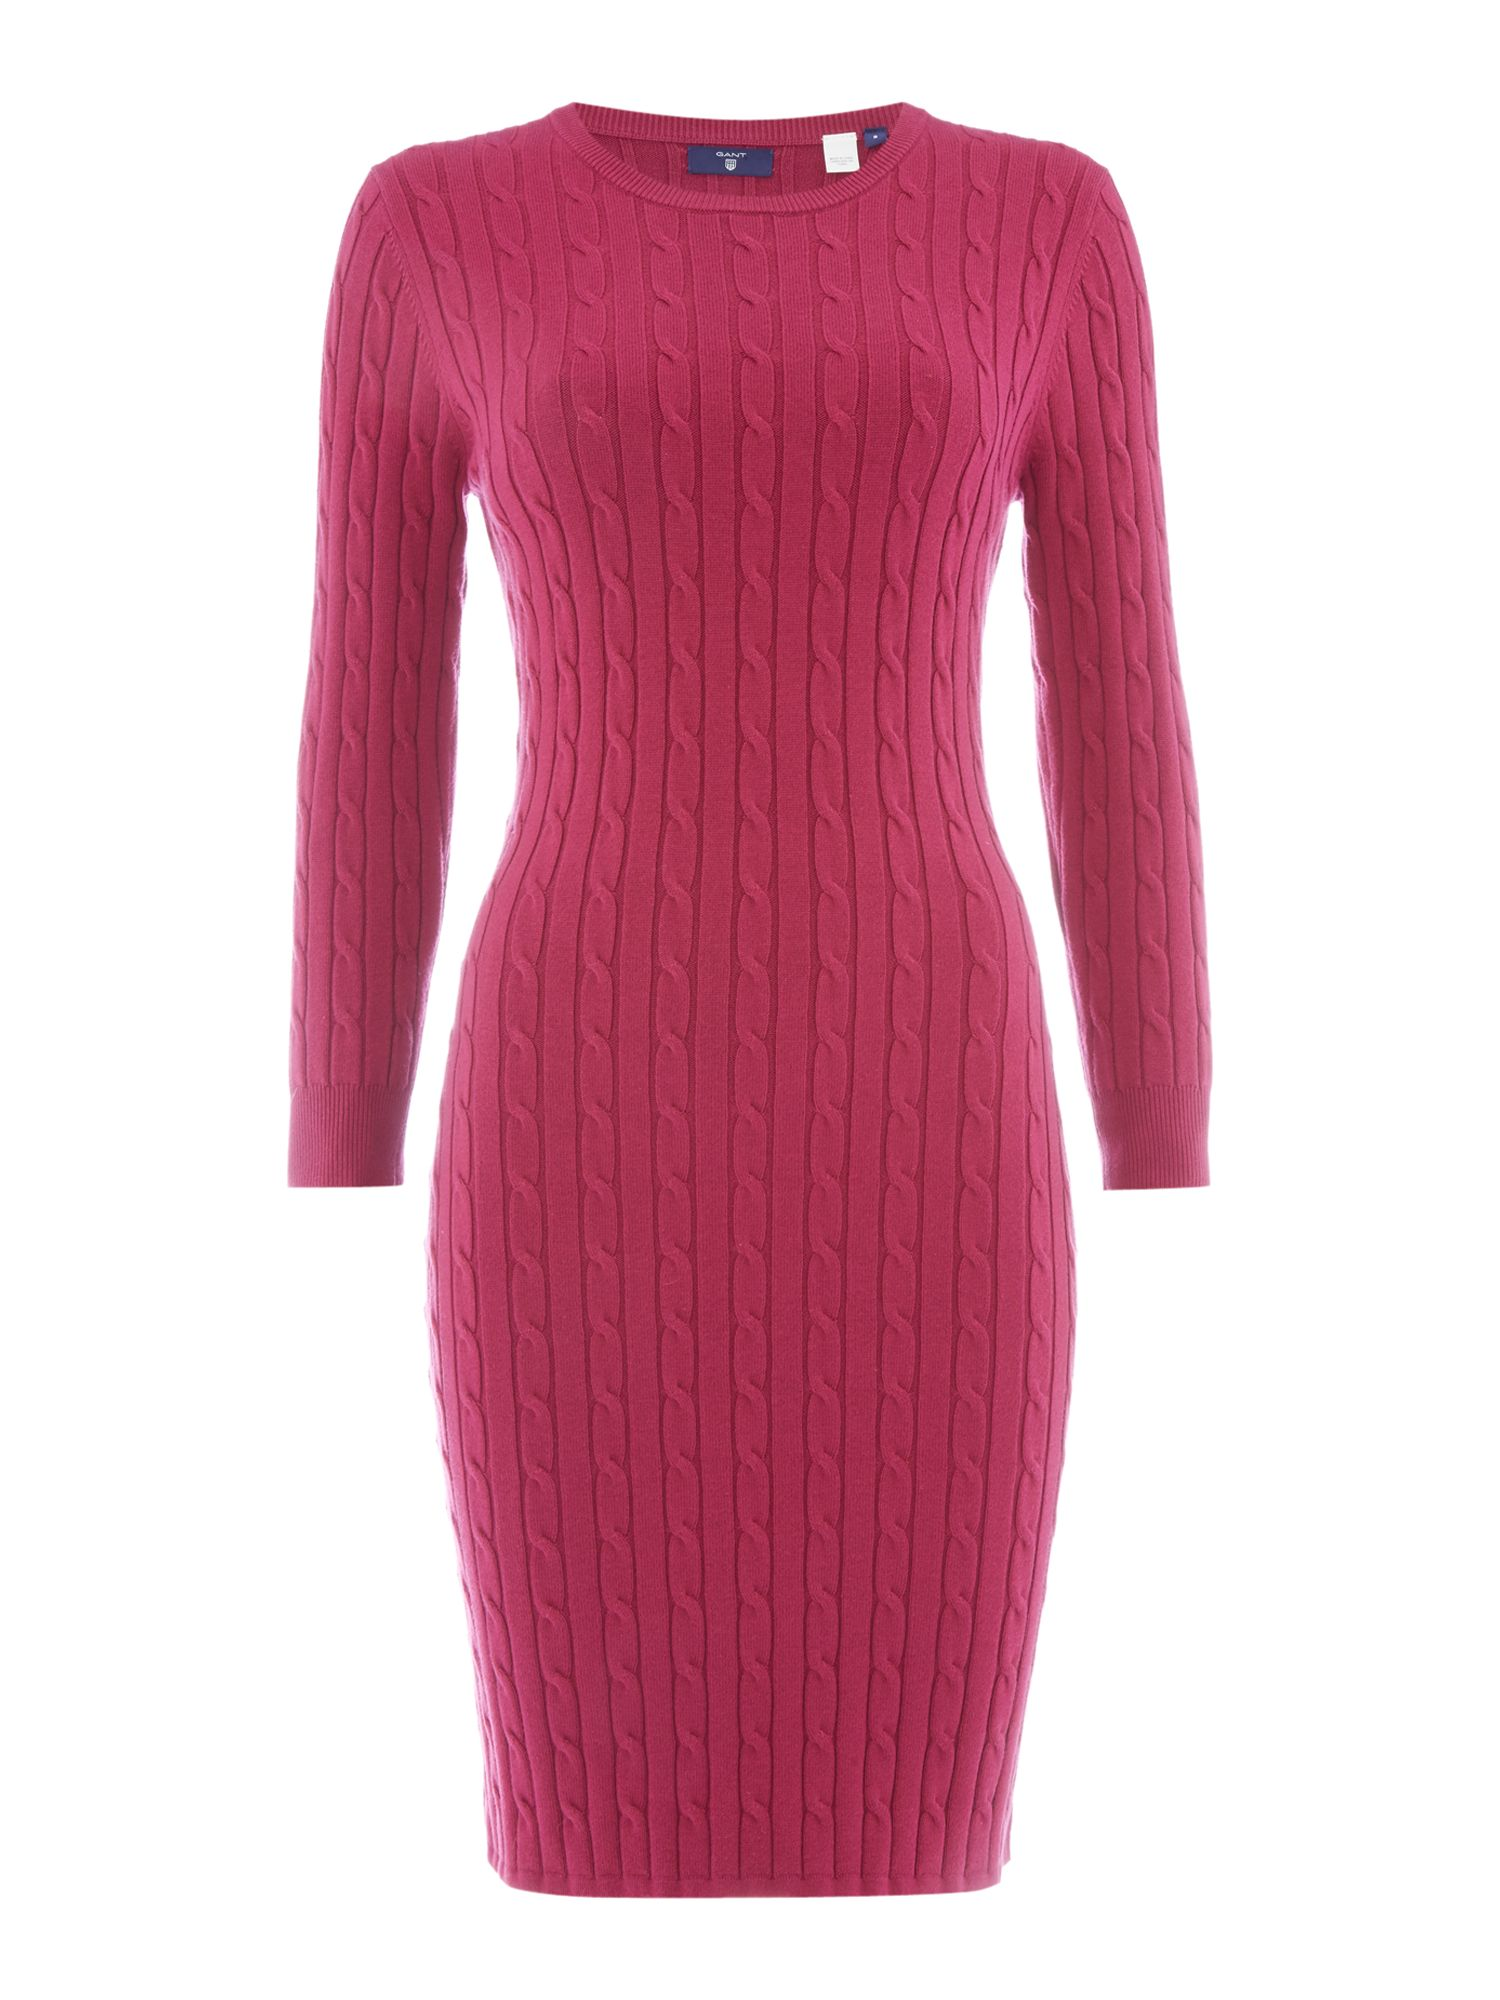 Gant Stretch Cotton Cable Knit Dress With 3/4 Sleeves, Raspberry